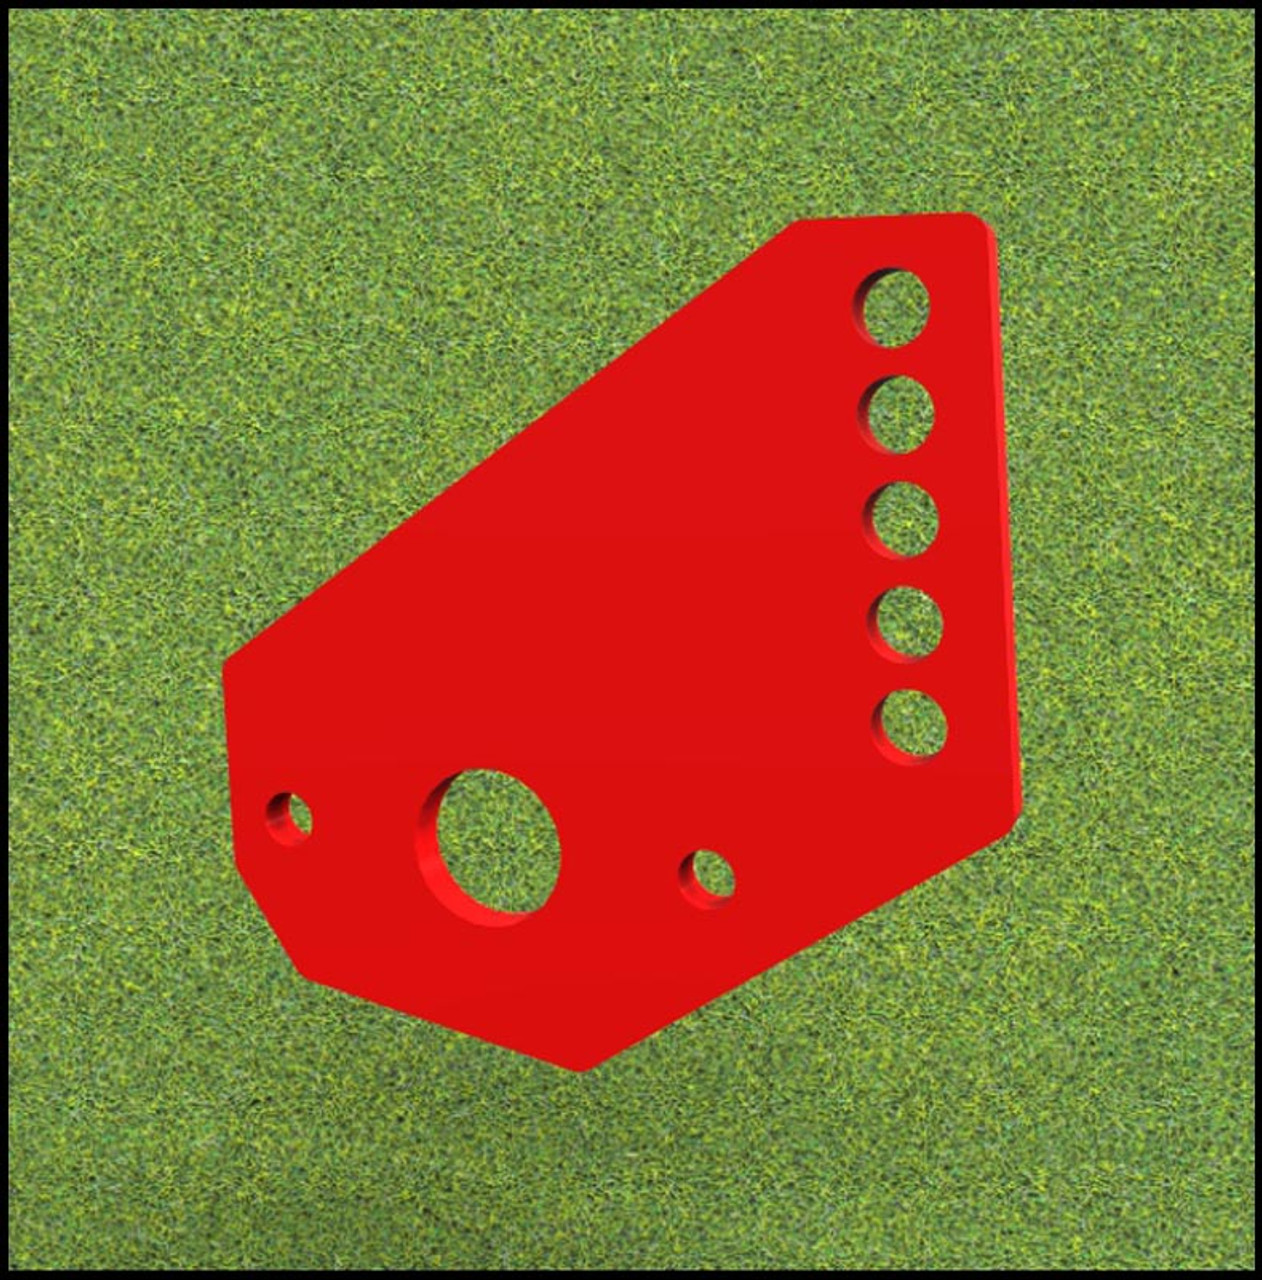 Mounting Bracket for eXmark Ultra Cut, HP and all Toro Turf Stripers